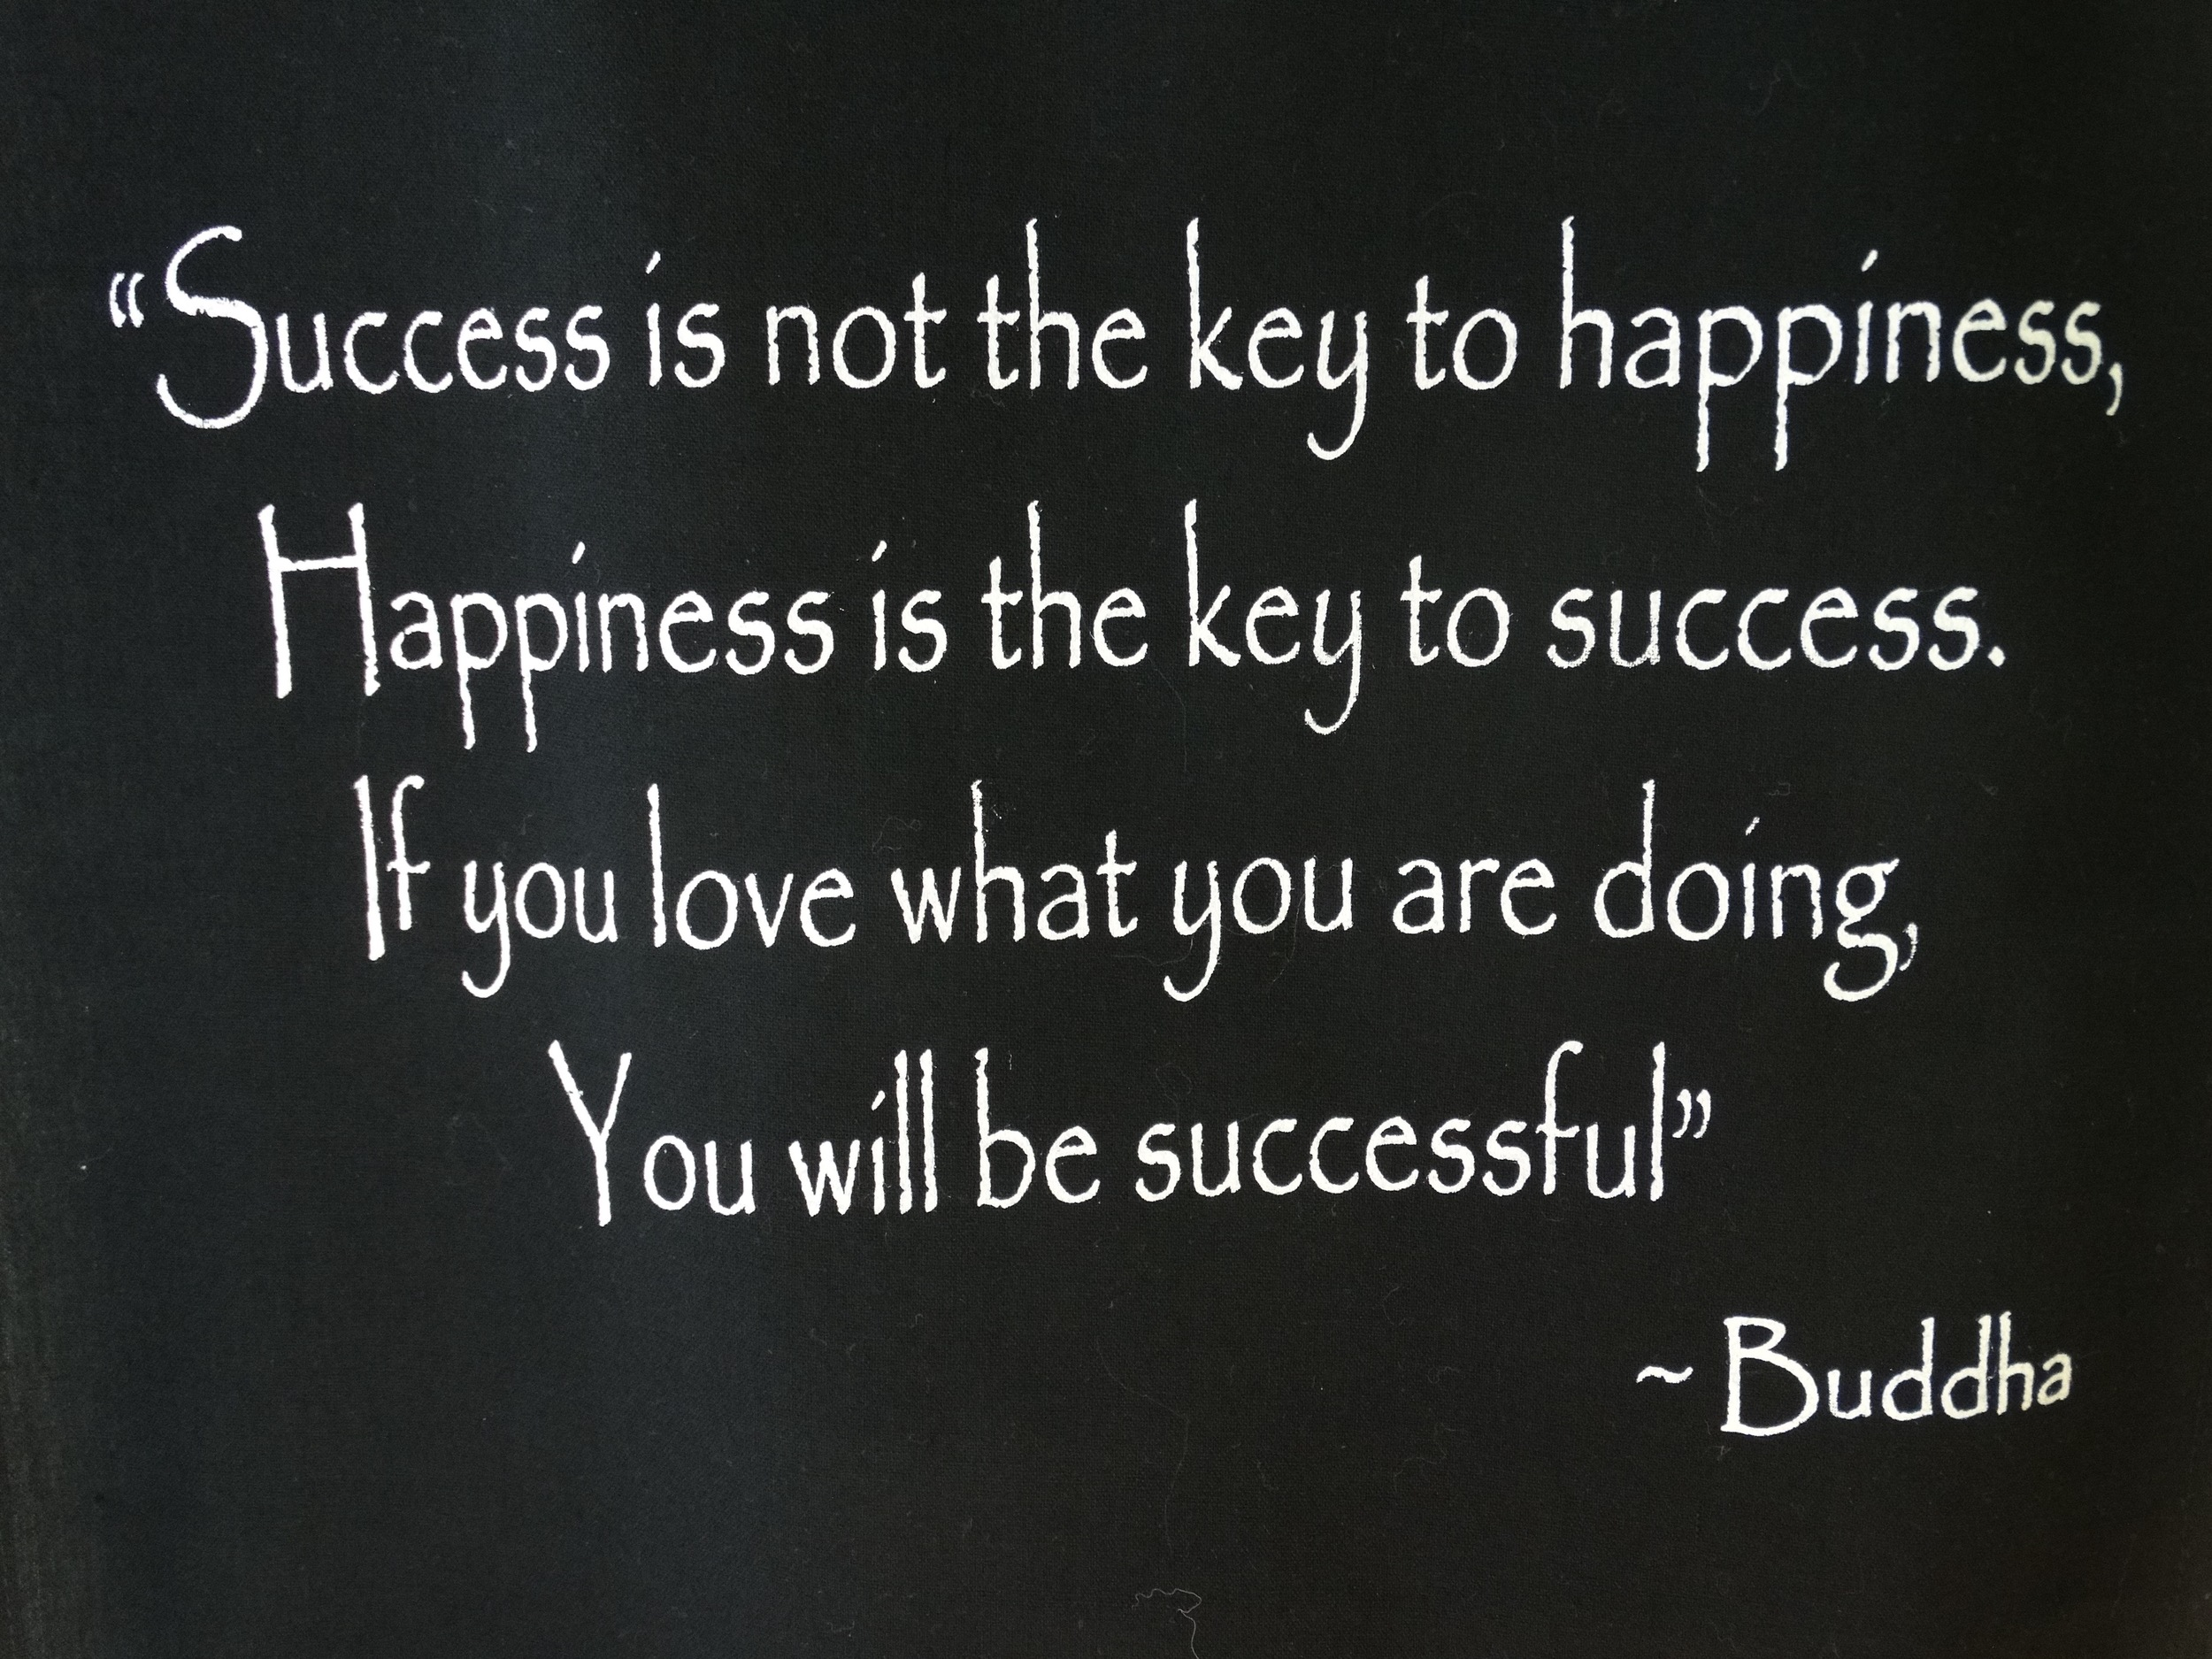 This quote hangs in my office to remind me that I must love what I do to be truly happy and successful.